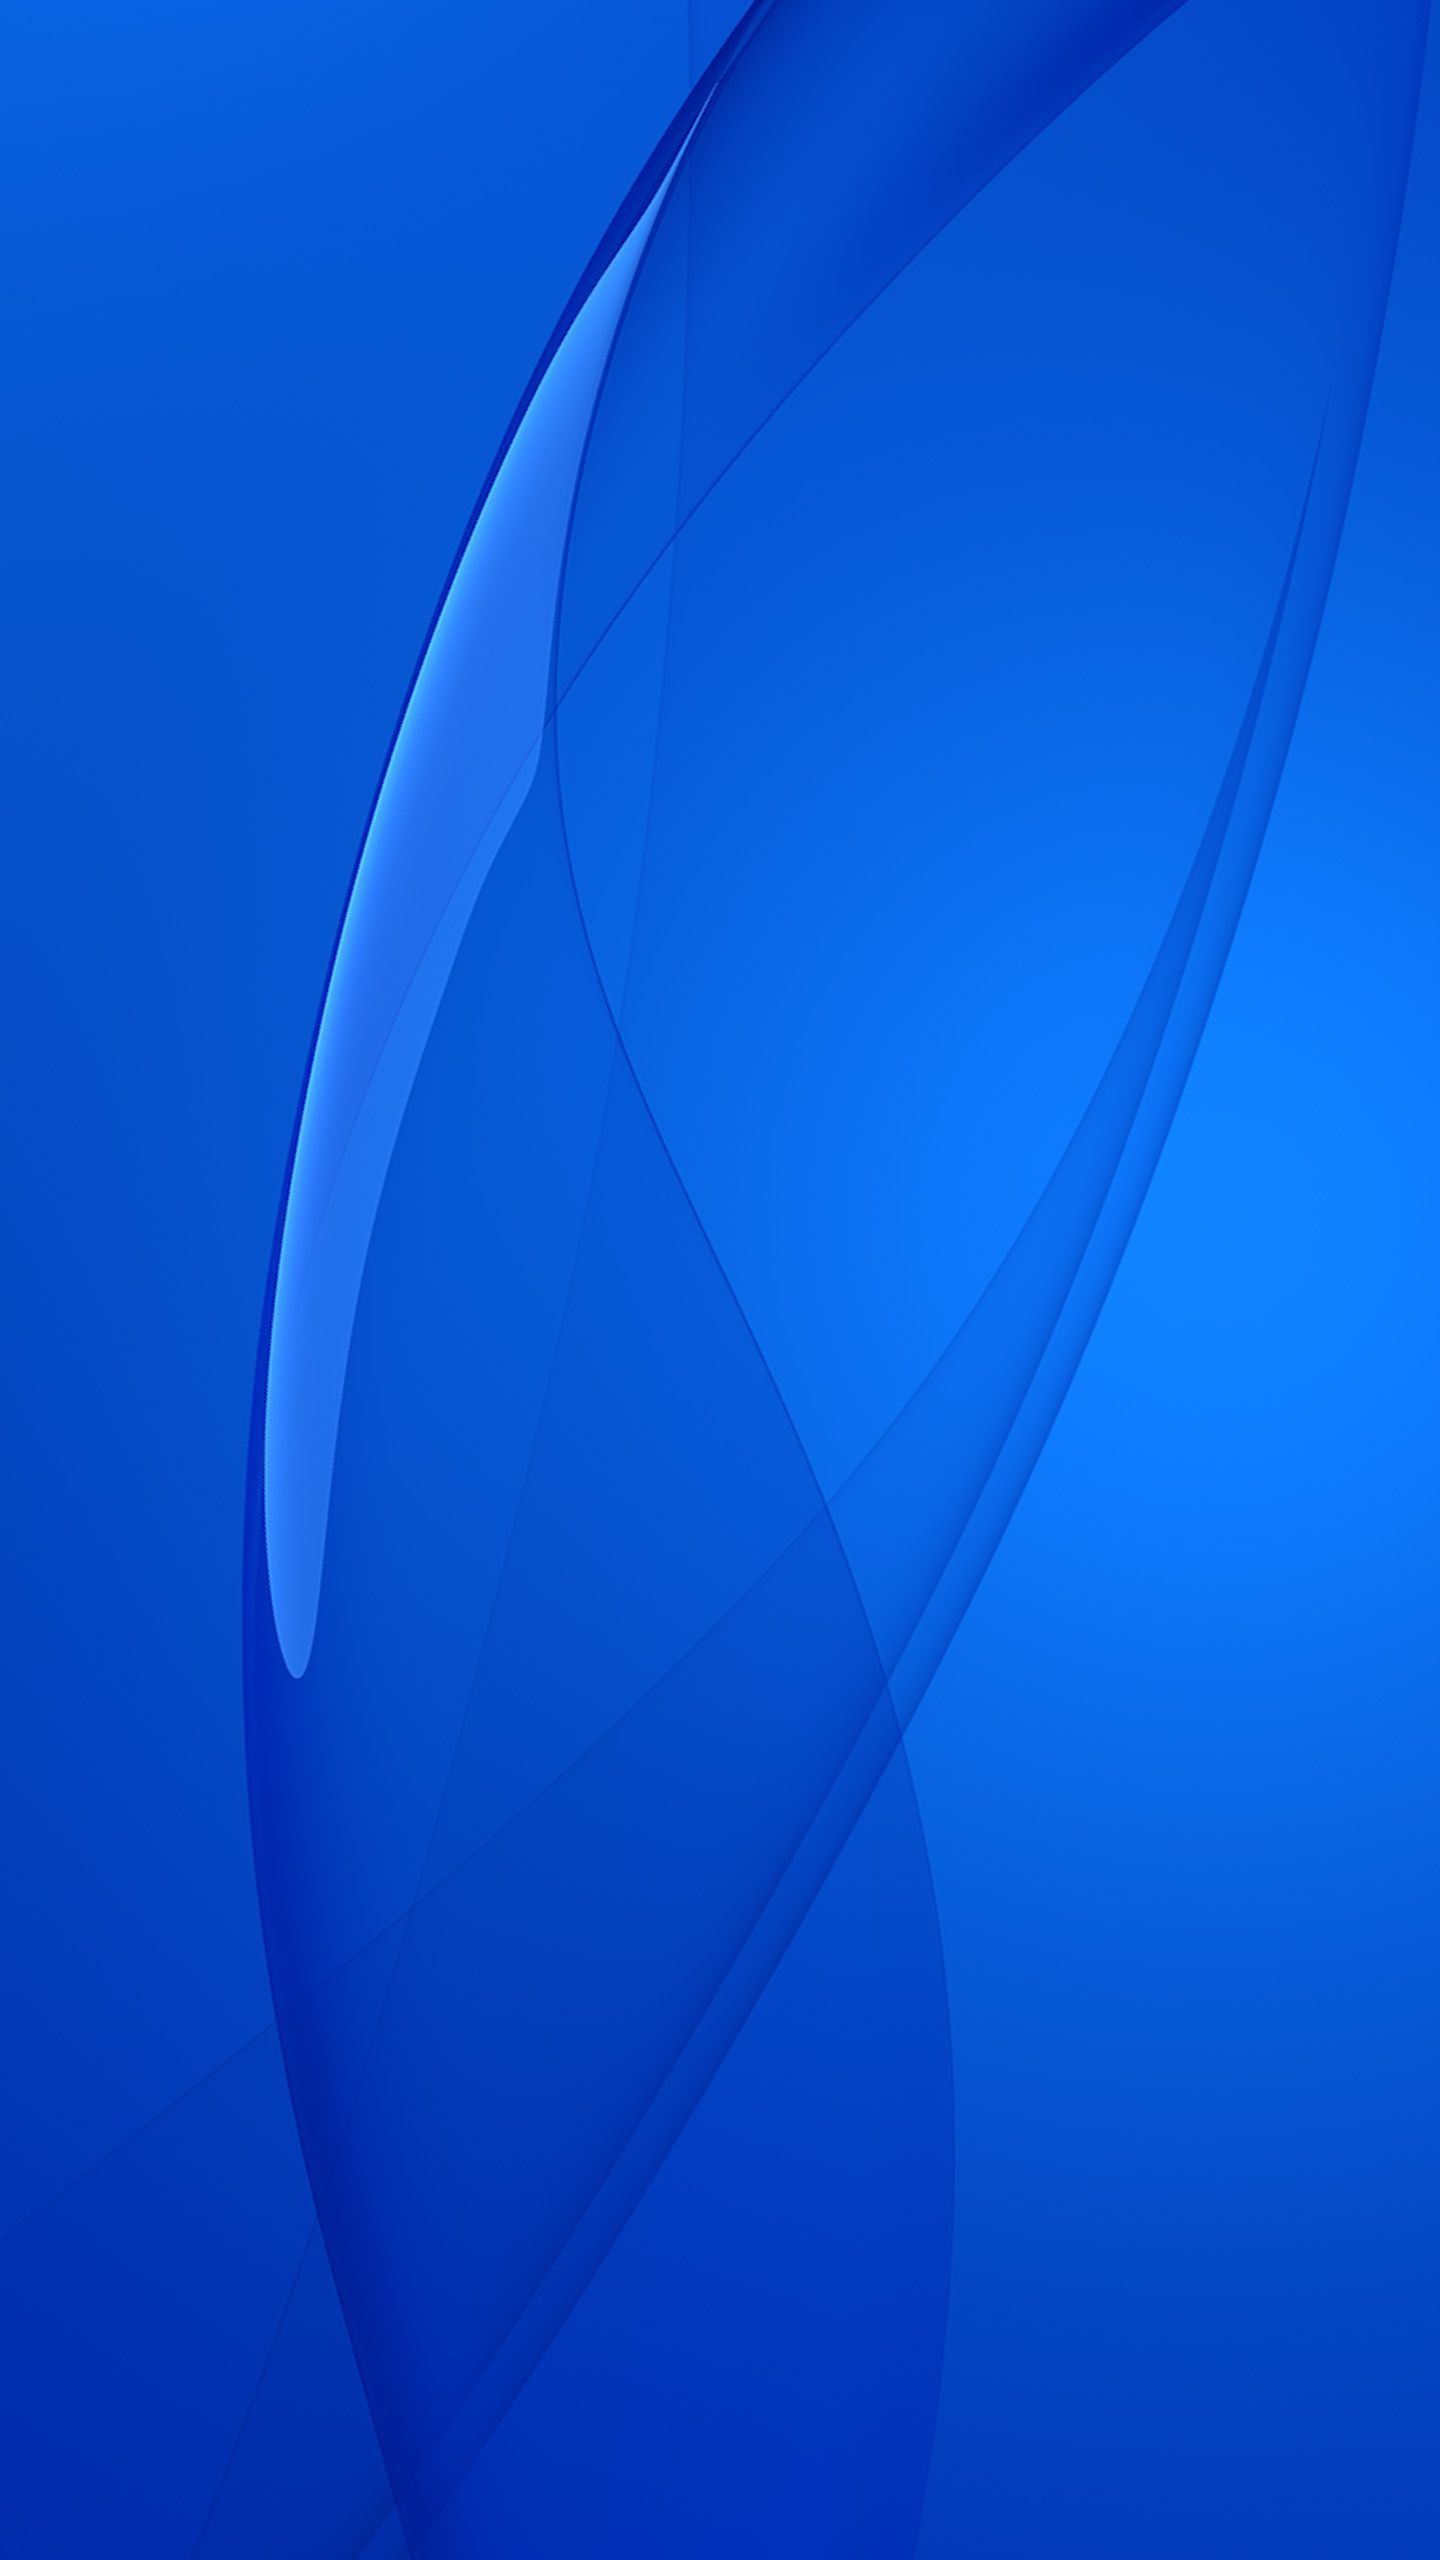 Blue Abstract Mobile Phone Wallpaper Wallpapers And Backgrounds